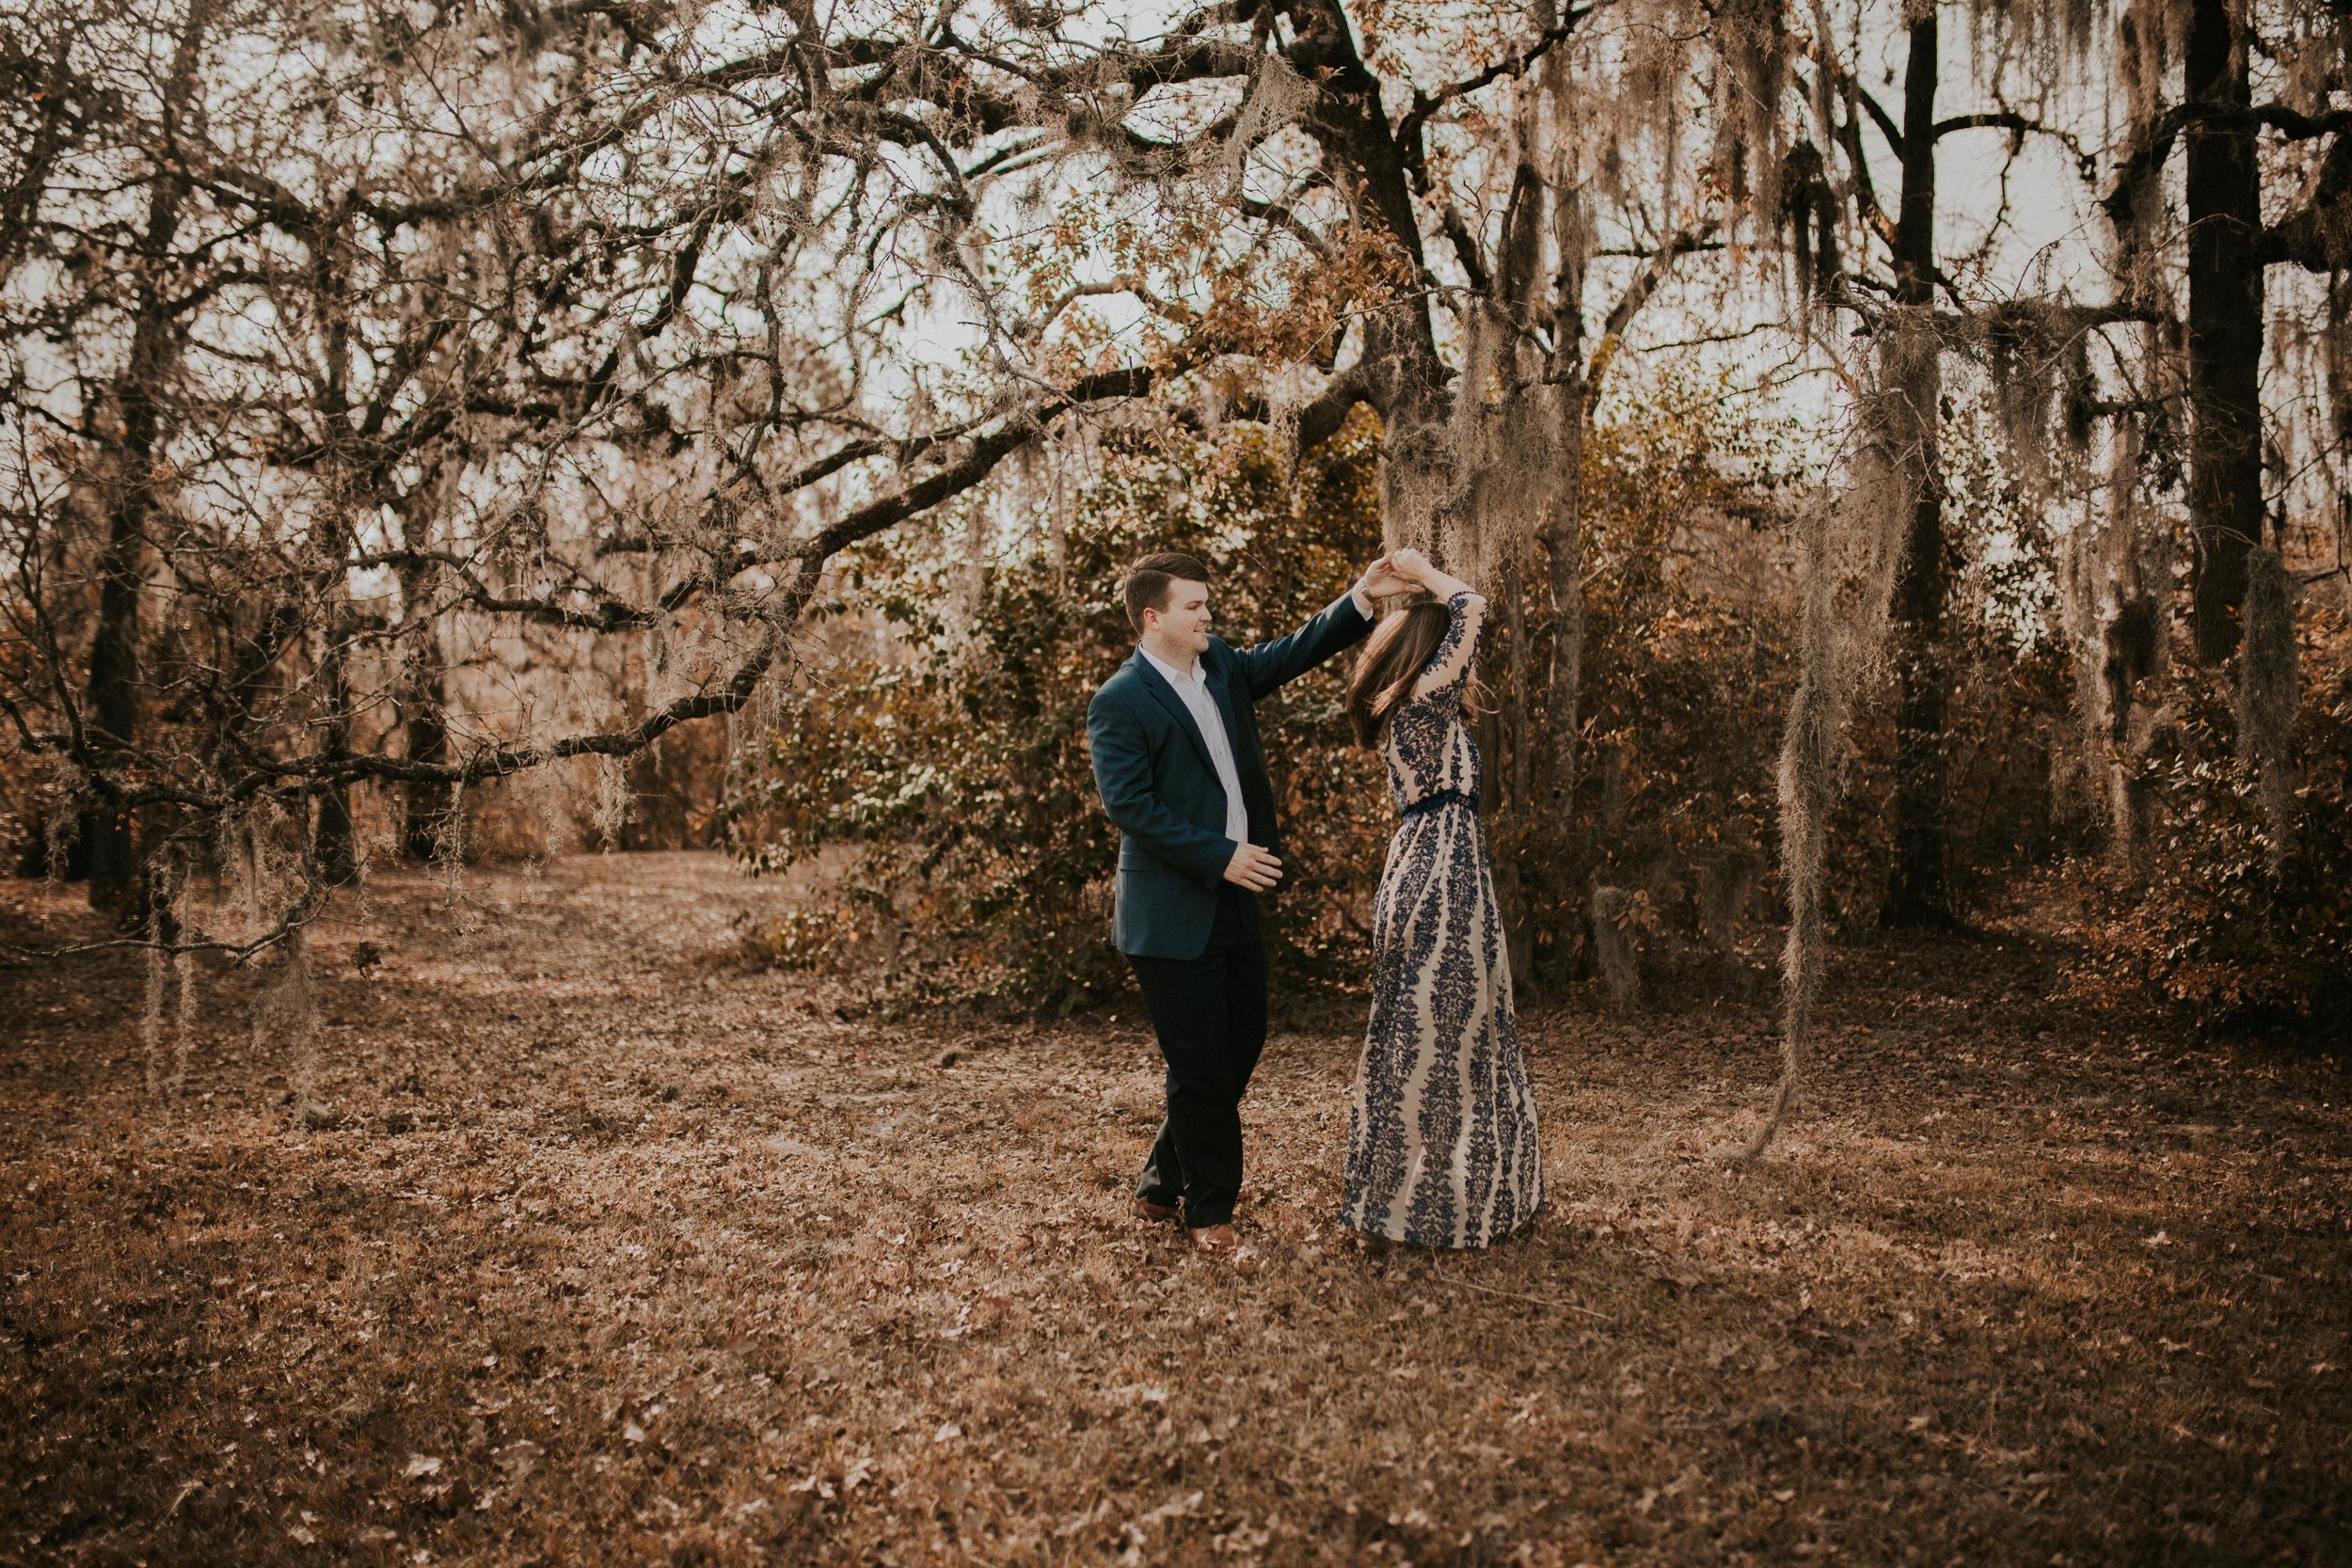 Memorial Park Engagement Session Houston Texas - Madeleine Frost-1160.jpg